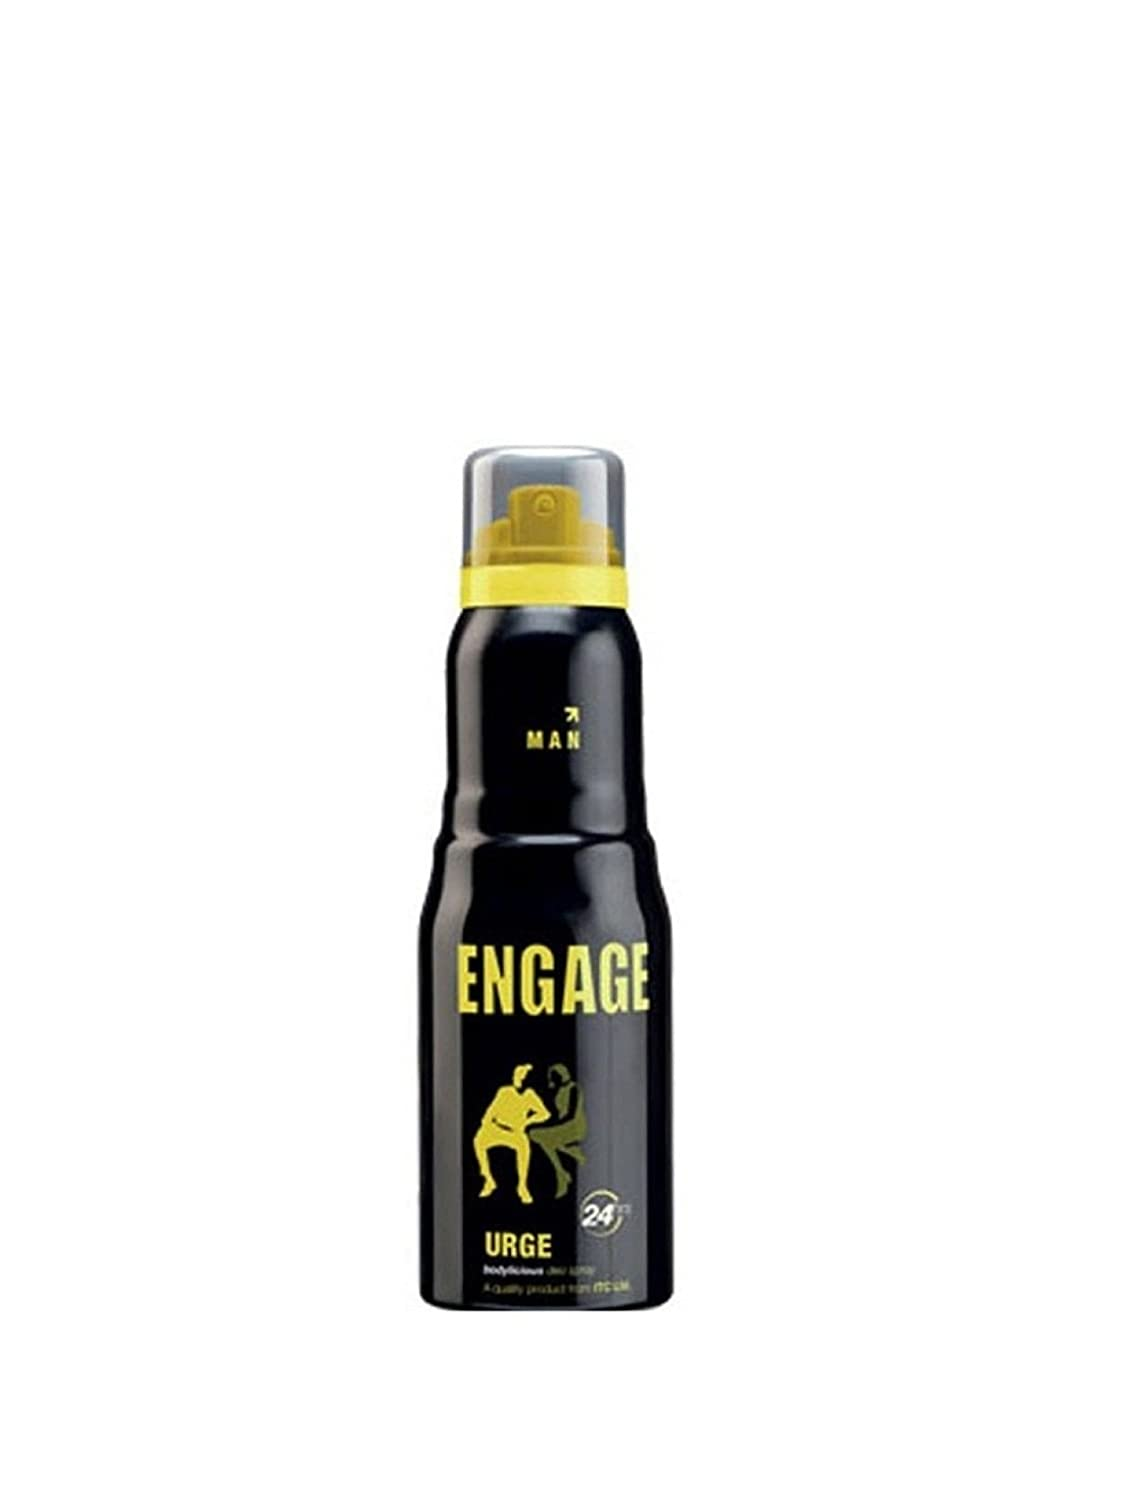 Engage Urge Deodorant For Men, 150ml / 165ml (Weight May Vary)